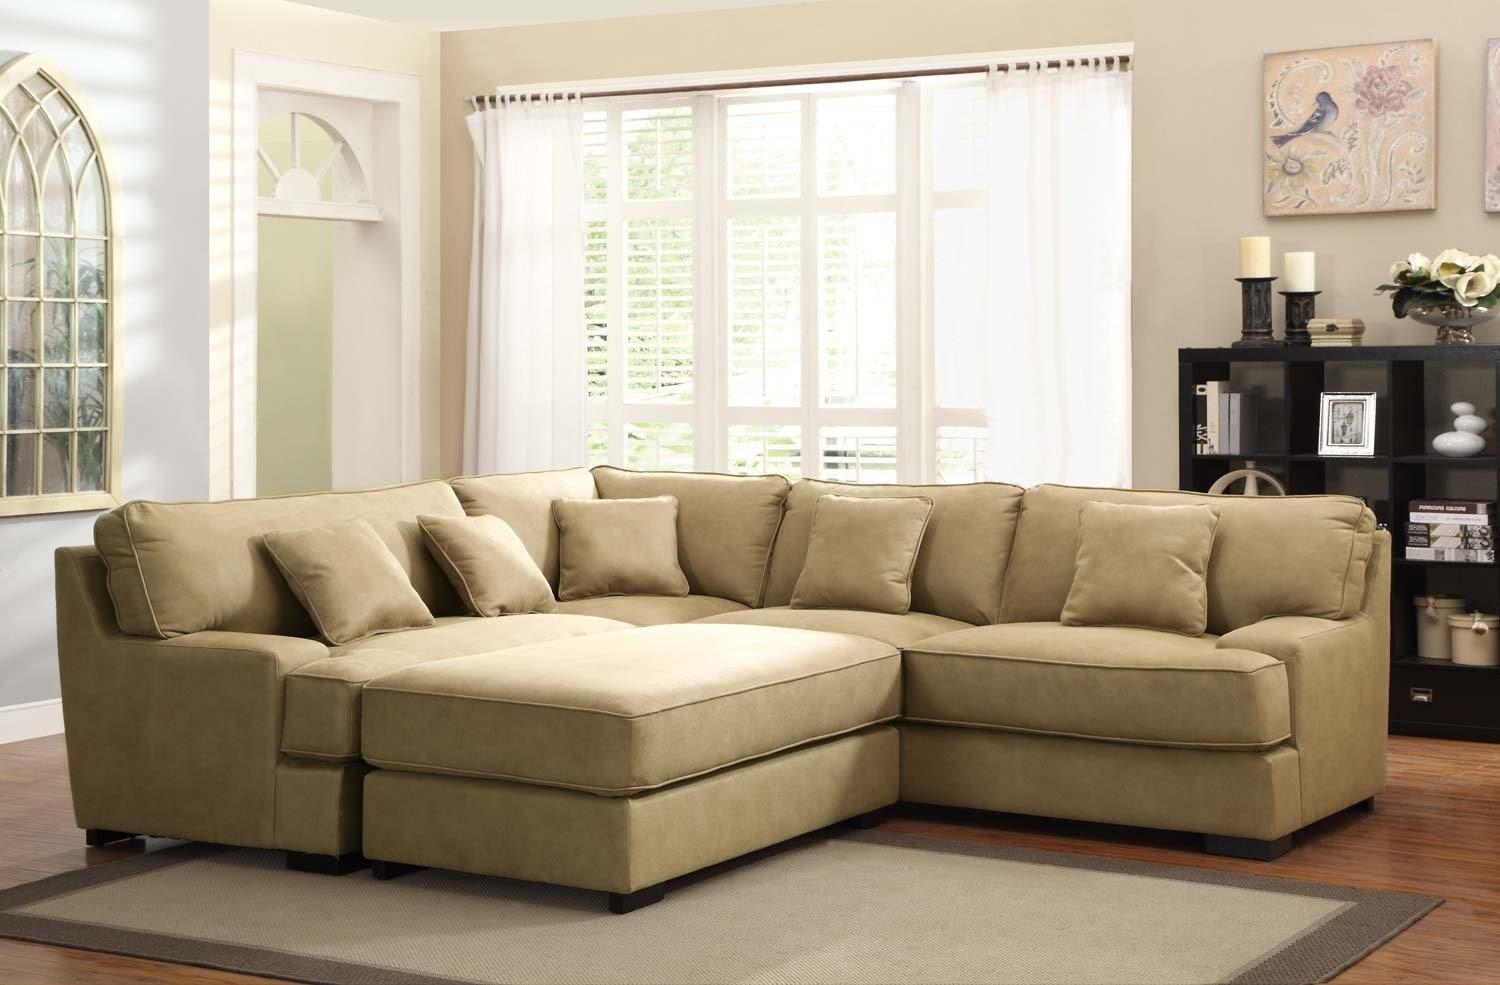 Sofas: Oversized Sofas | U Shaped Sectional Sofa | Oversized Sofa For Oversized Sectional Sofa (Image 19 of 20)